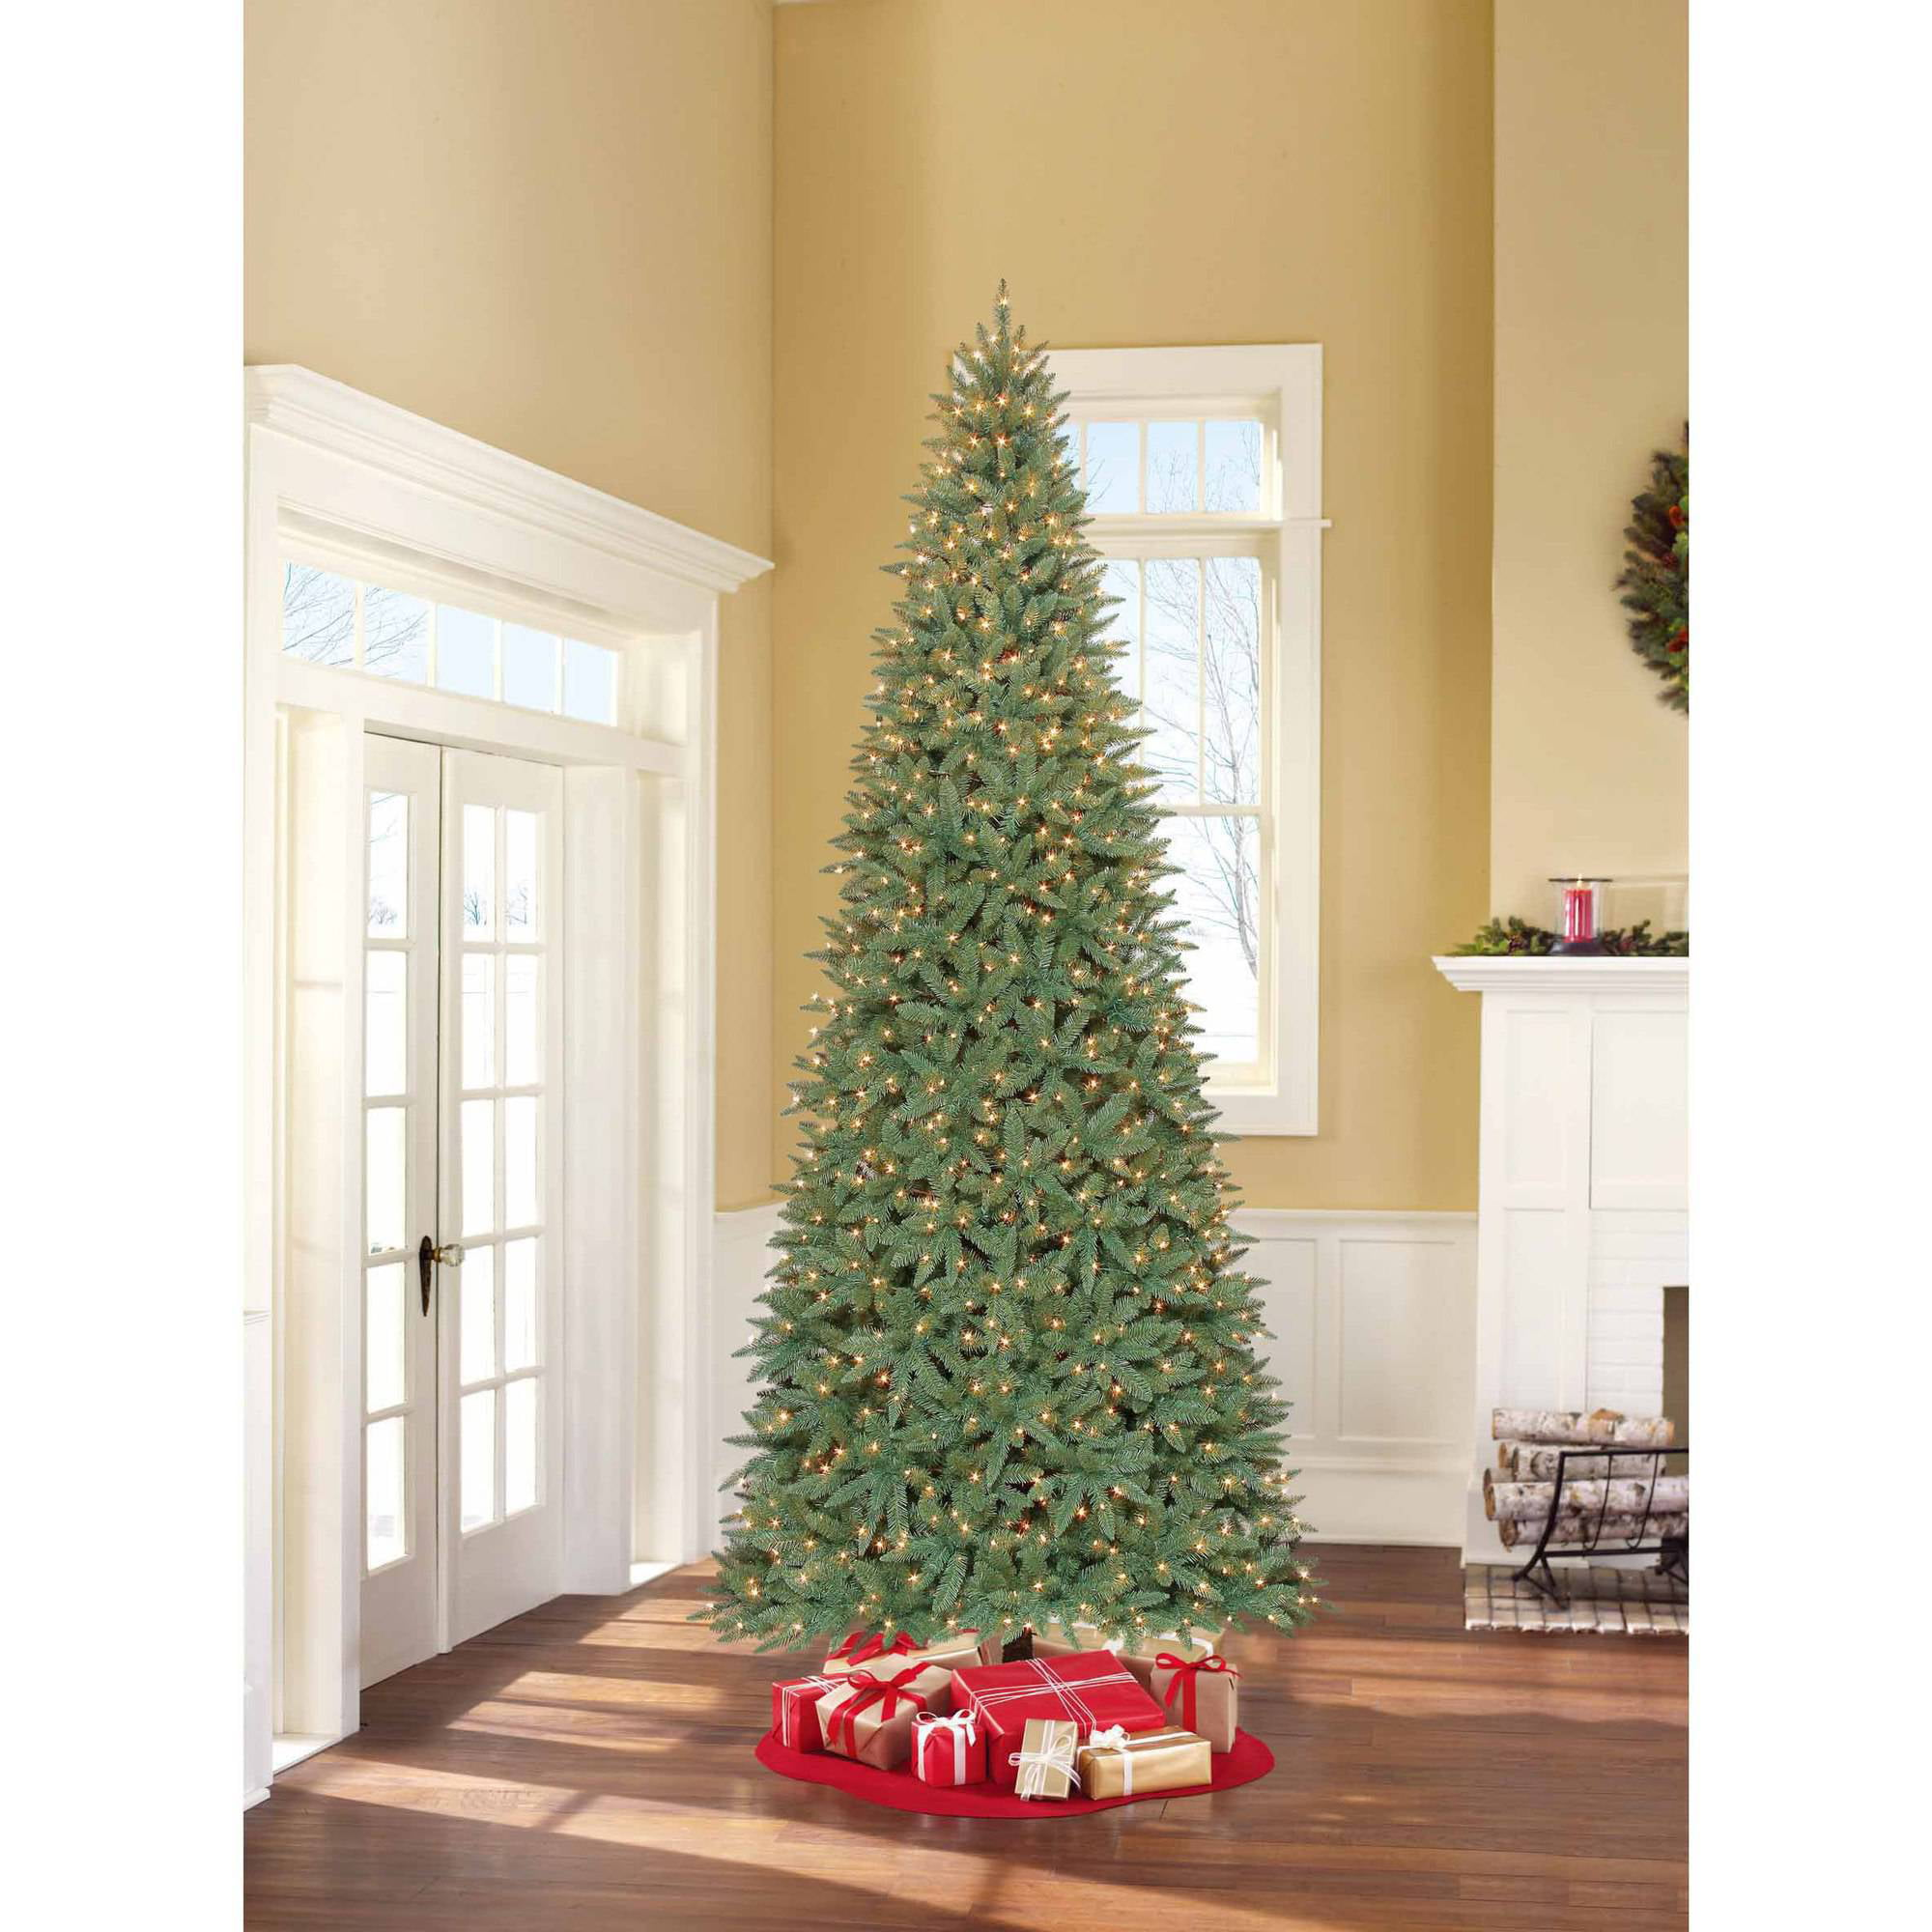 national tree pre lit 6 12 kingswood fir hinged pencil artificial christmas tree with 250 multi lights walmartcom - 10 Artificial Christmas Tree